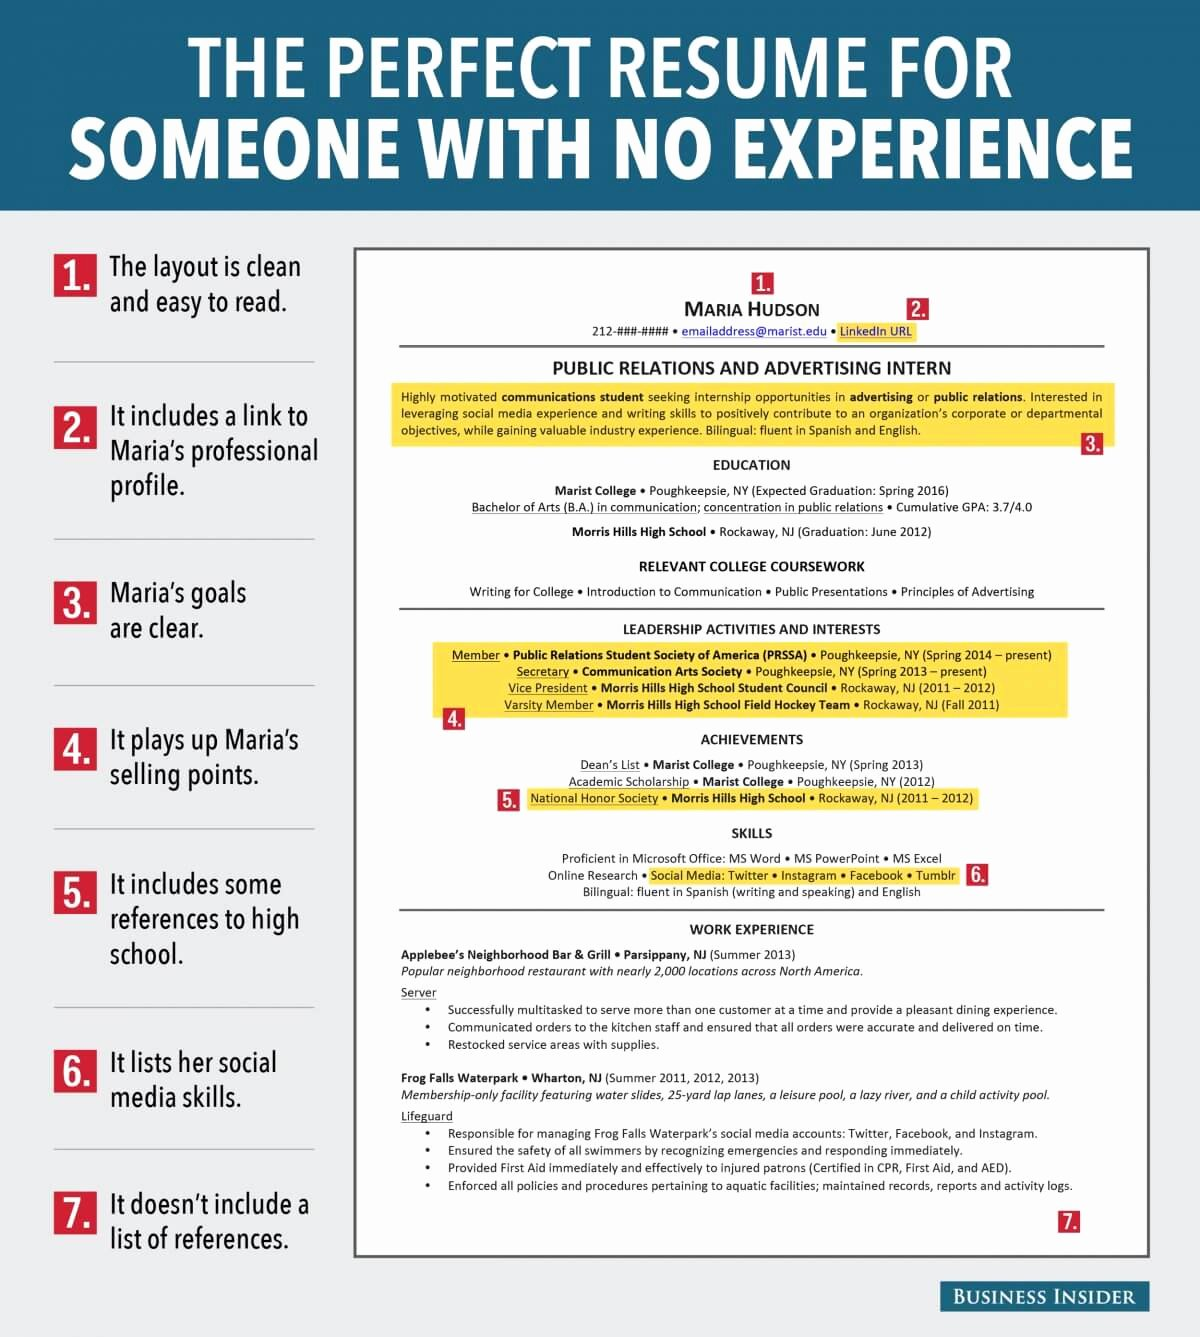 First Time Job Resume Best Of How to Write A Resume with No Experience Jobscan Blog